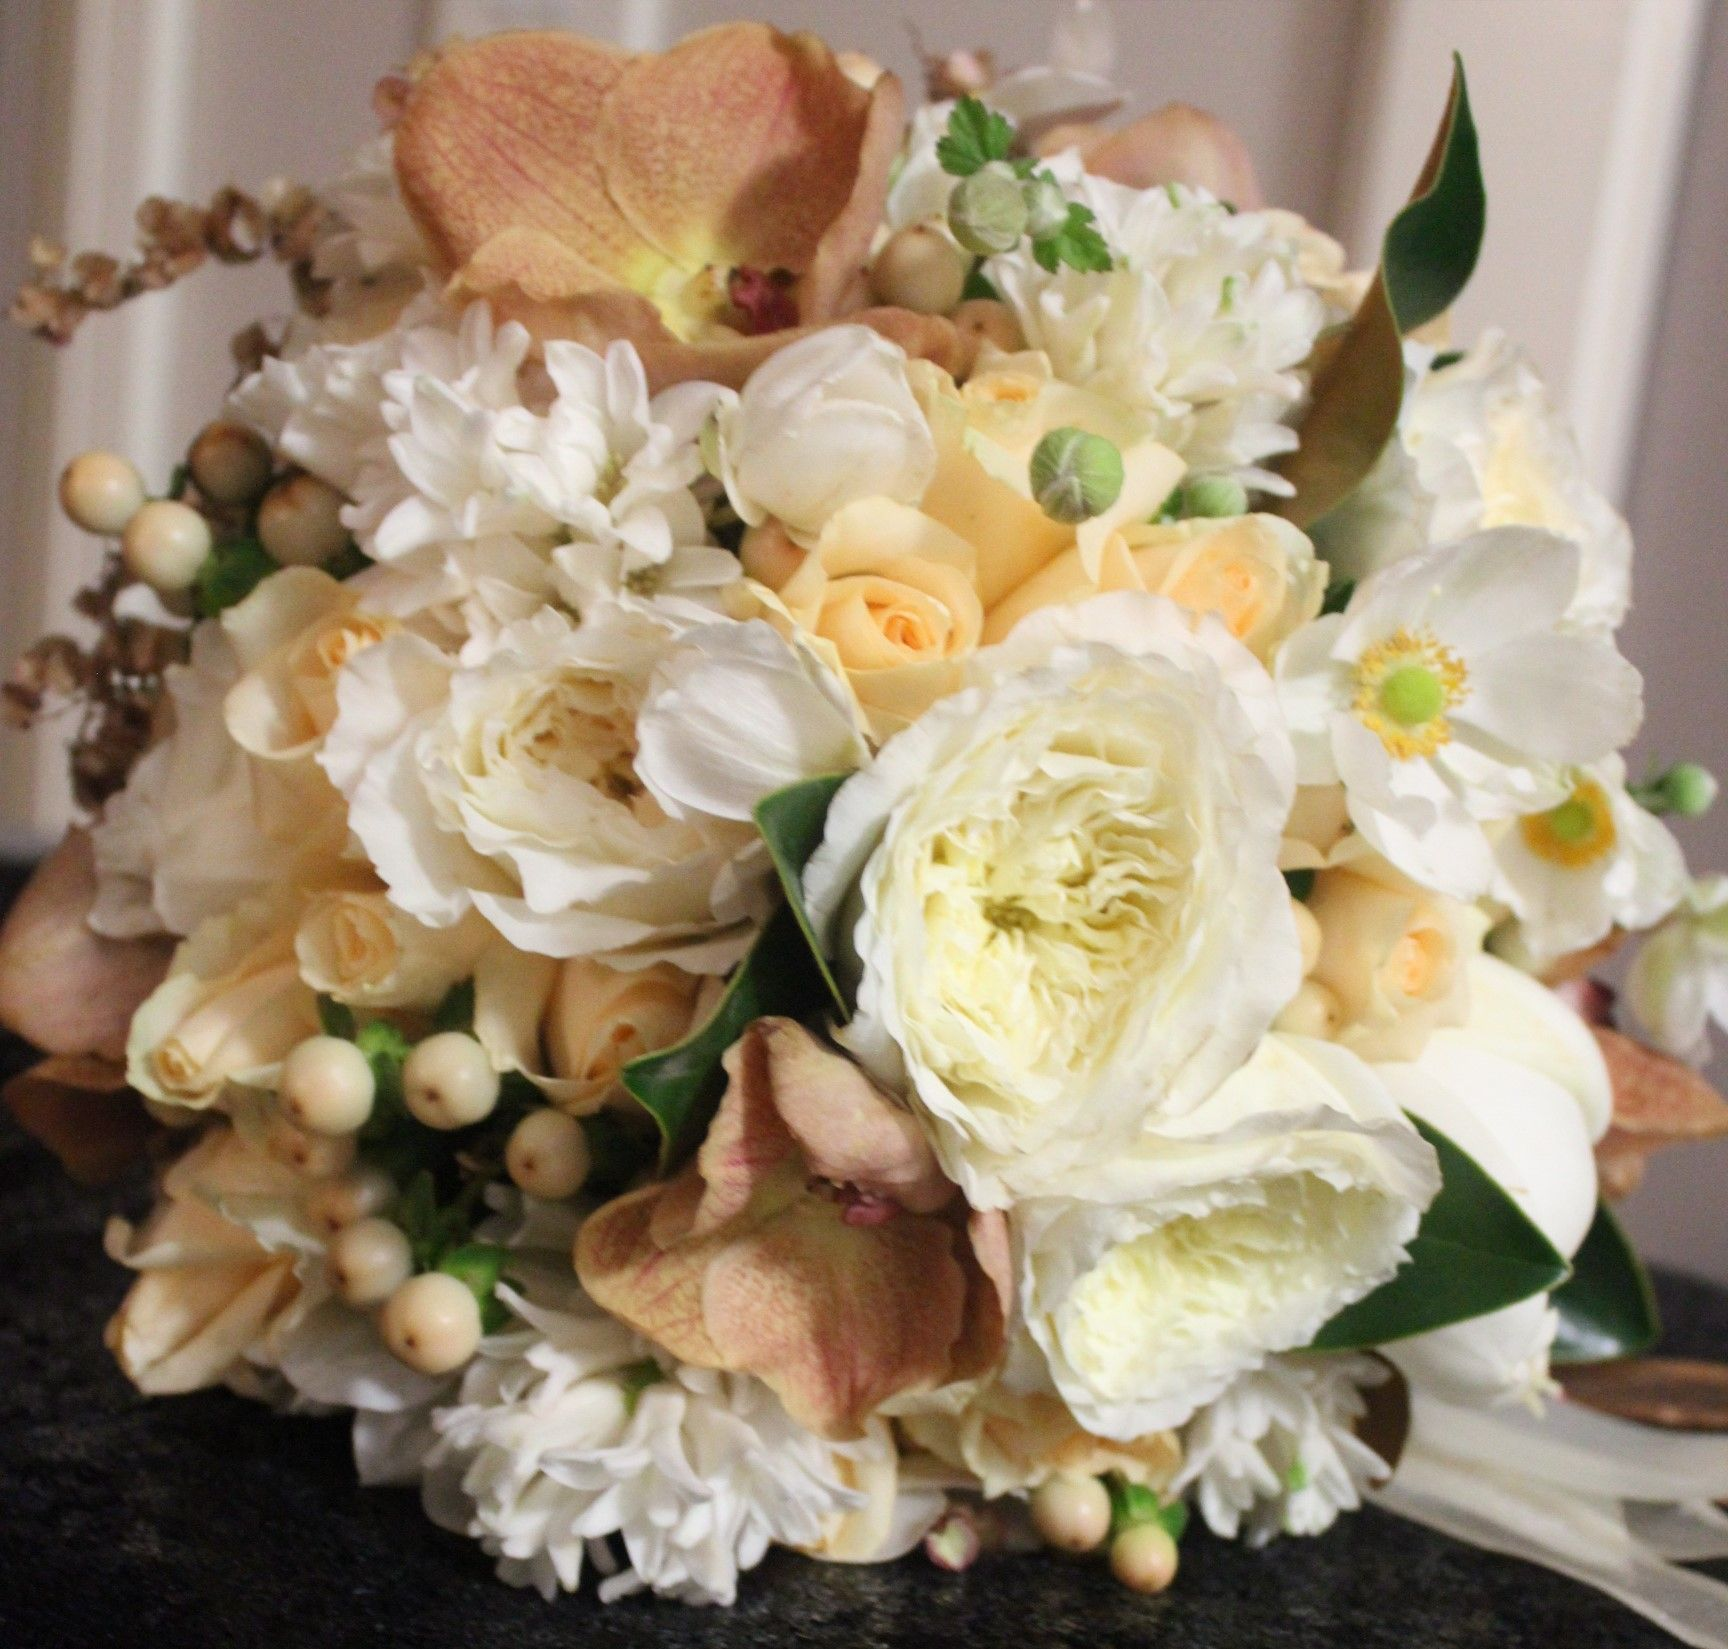 Glamourous ivory and copper tone wedding bouquet with vanda orchid glamourous ivory and copper tone wedding bouquet with vanda orchid david austin roses hyacinth dhlflorist Choice Image